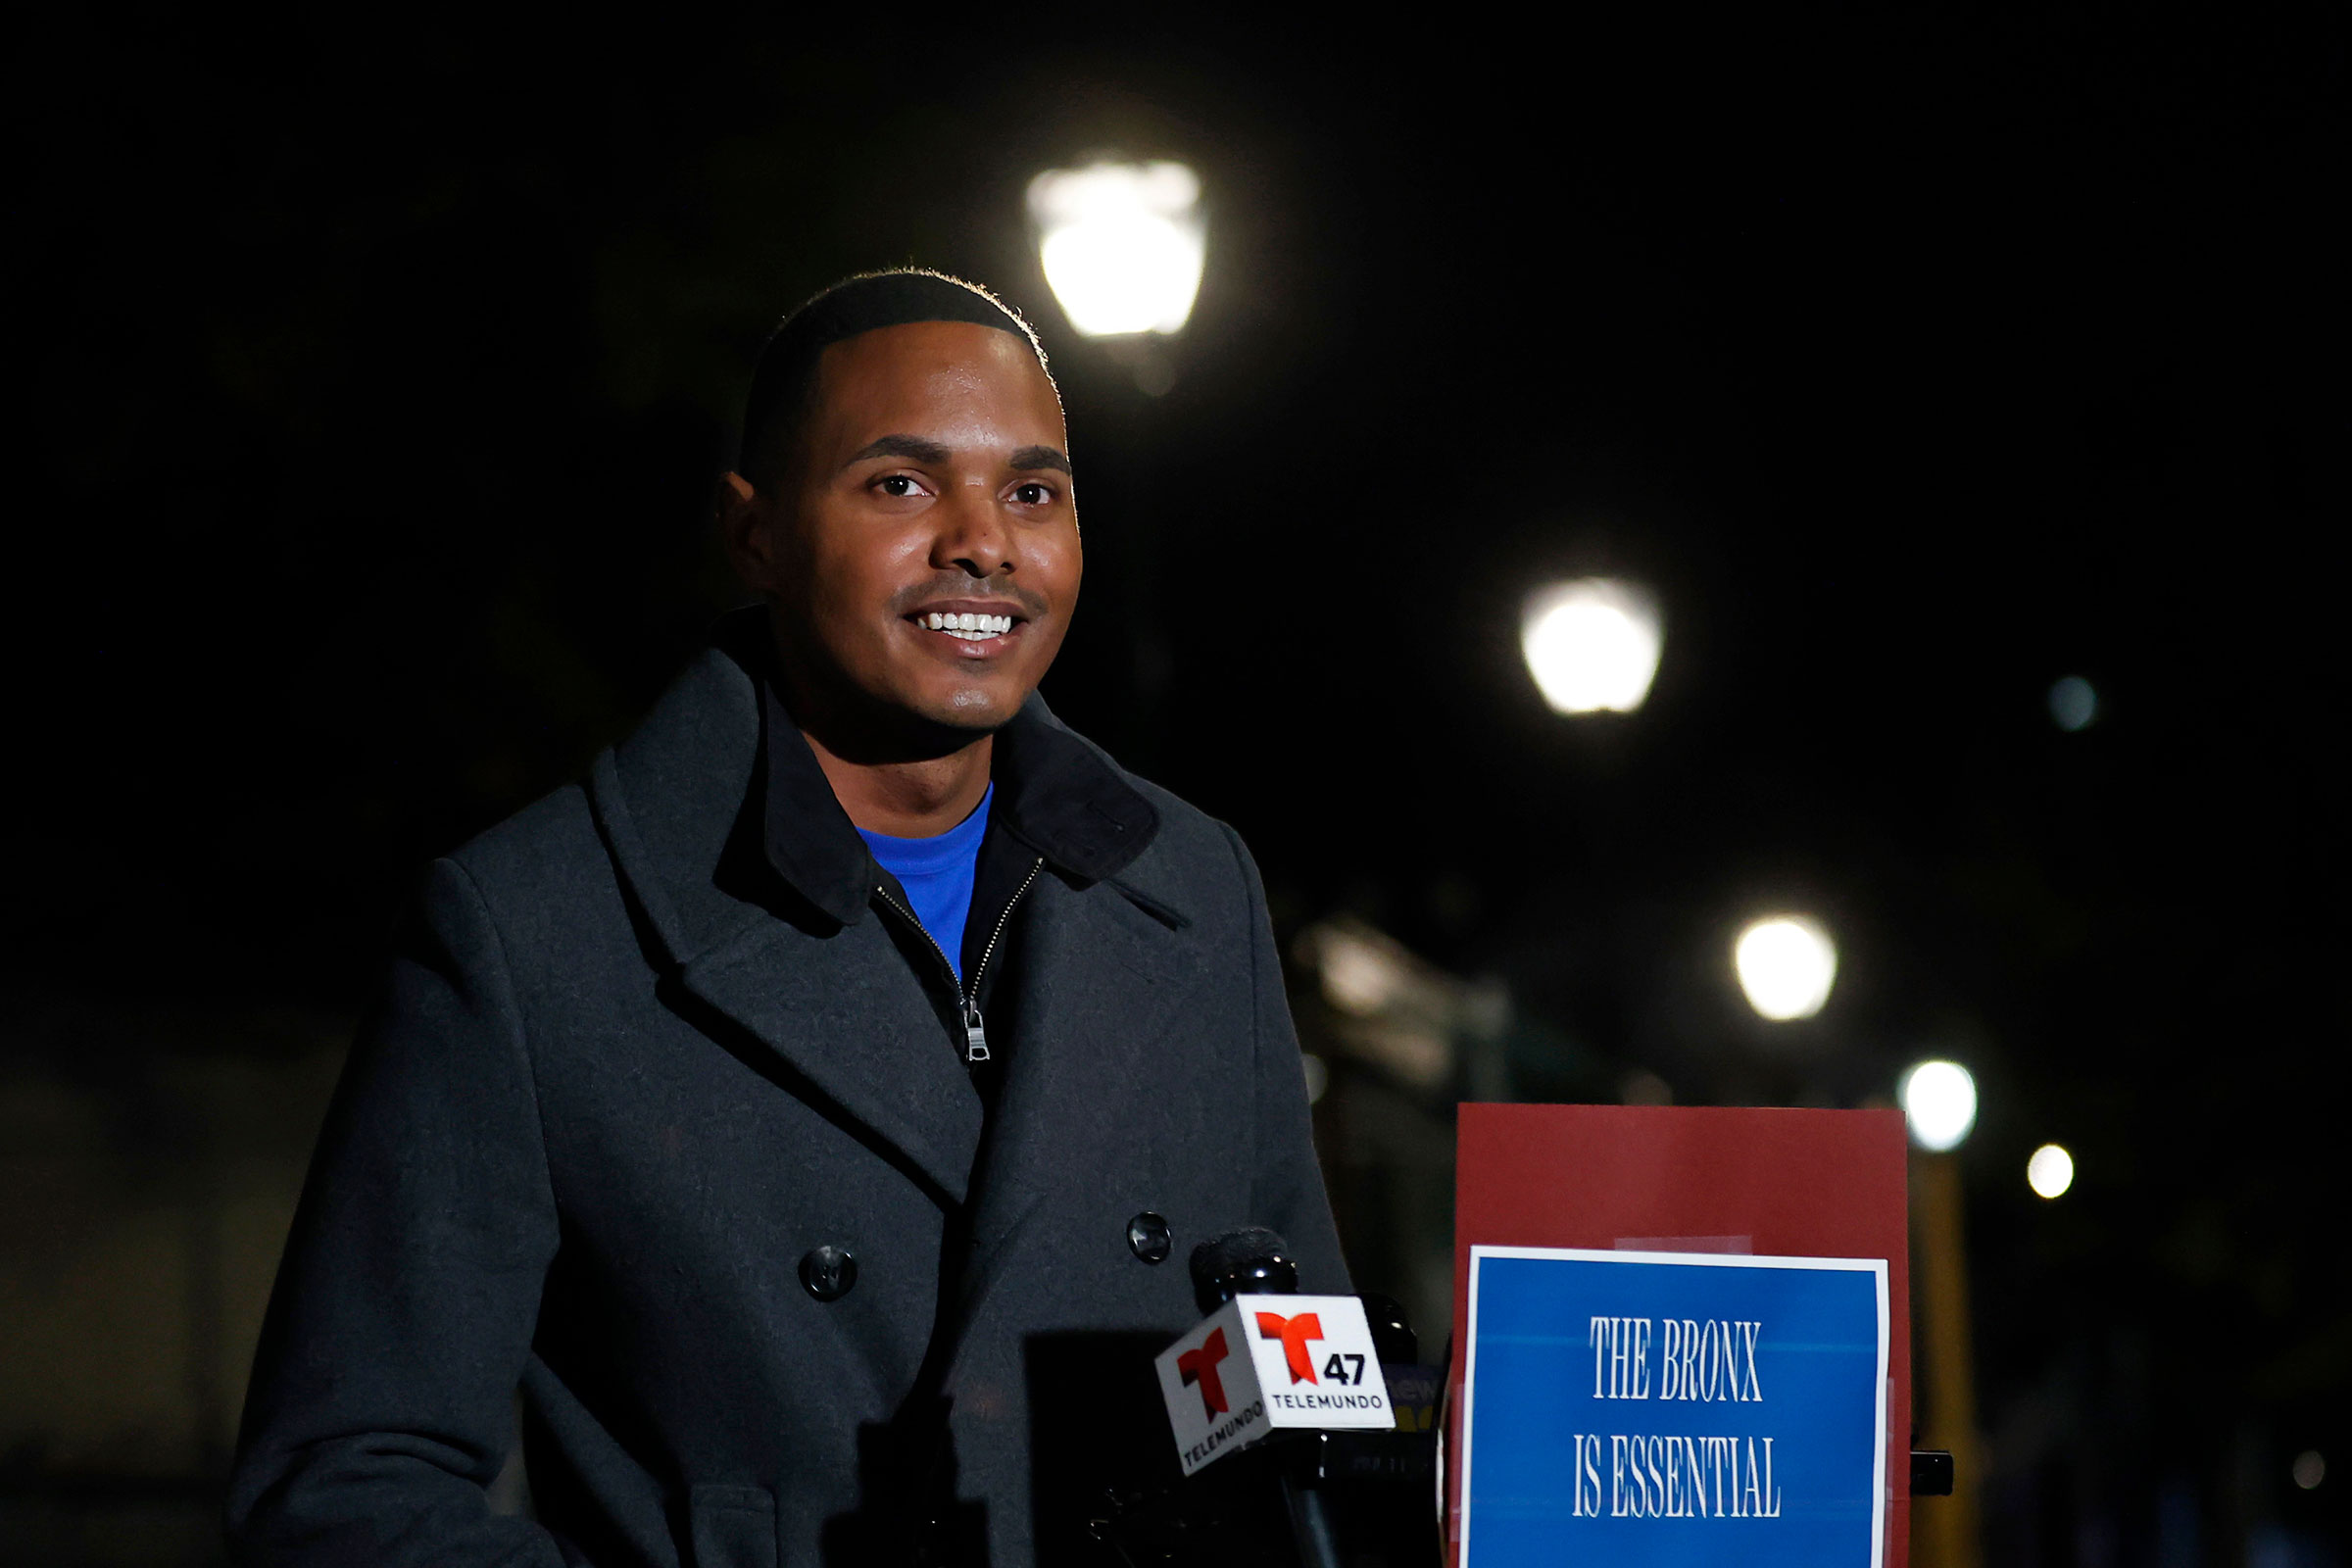 Representative-elect Ritchie Torres will become the first openly-gay, Black, Latino Congressman when Congress convenes on Jan. 3.